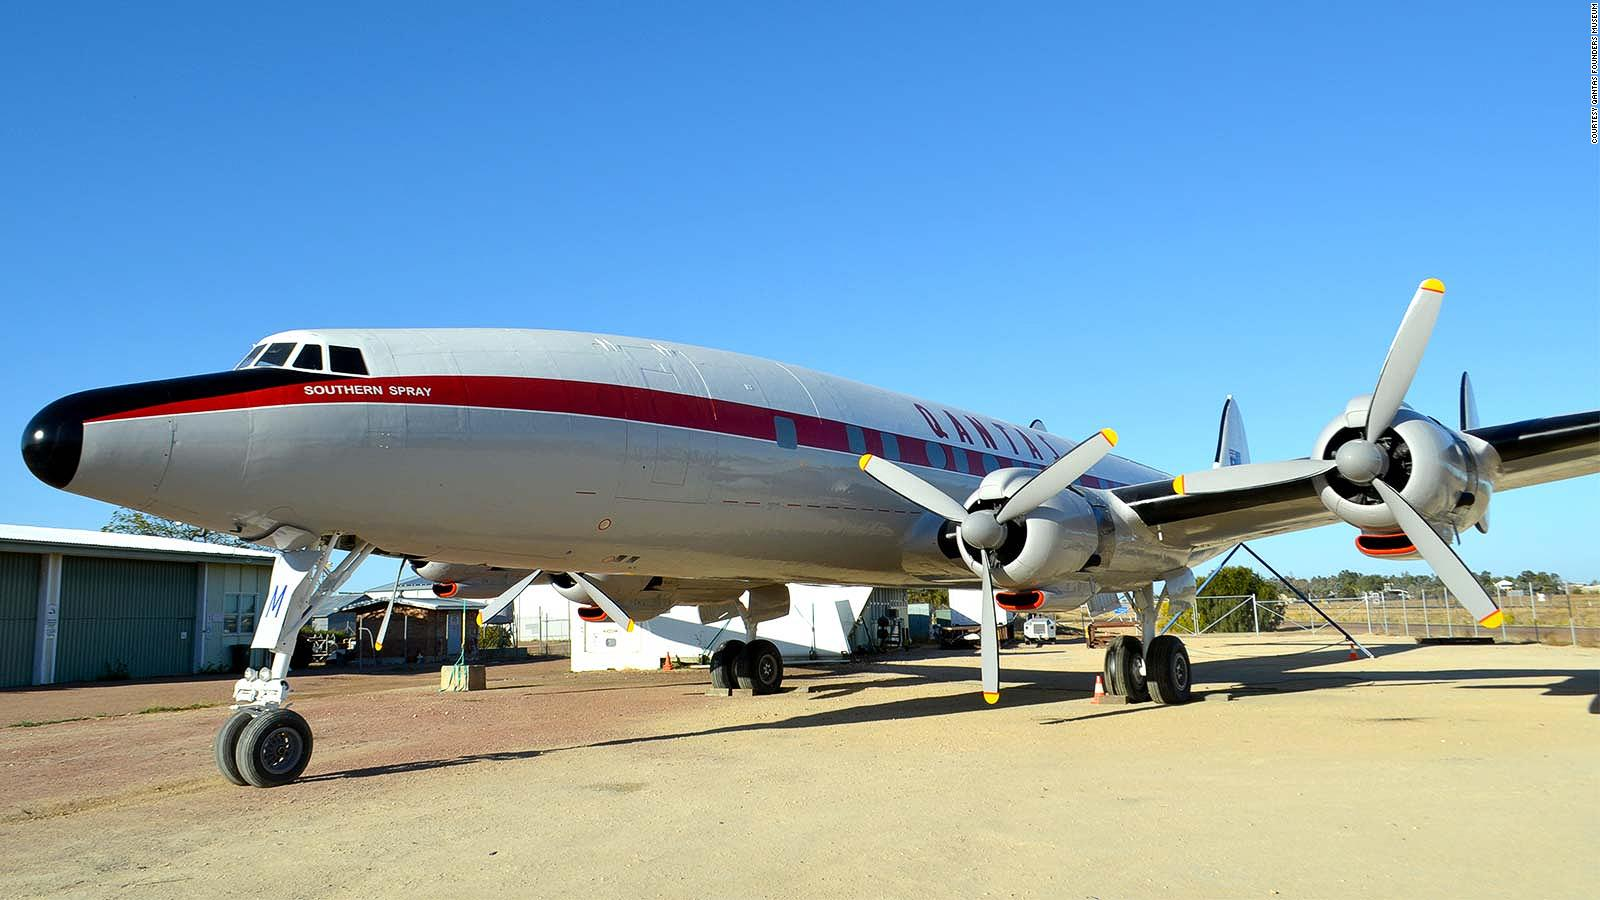 Qantas Super Constellation airliner from 1950s is restored